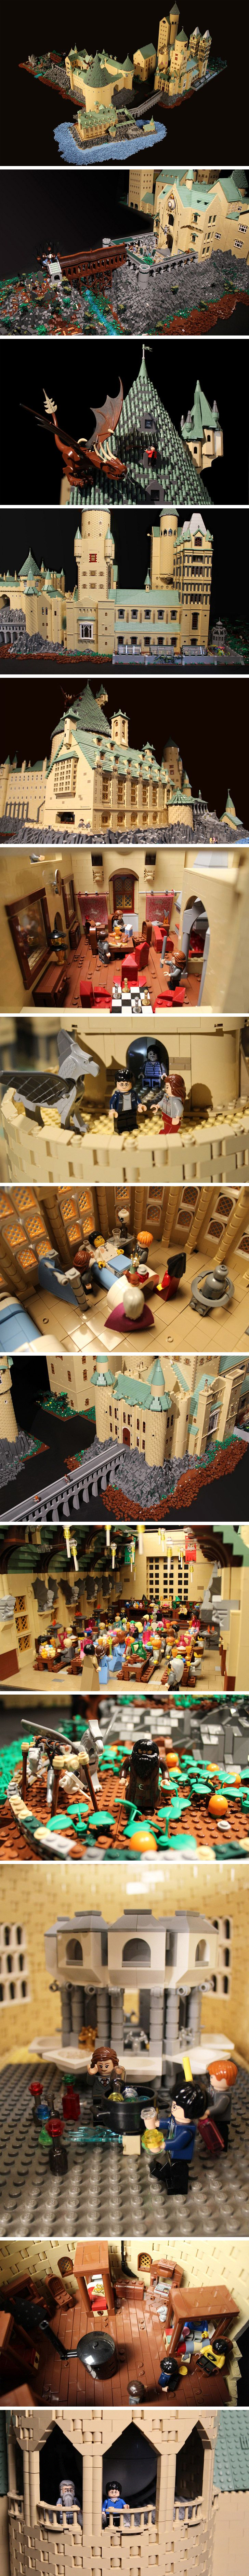 Harry Potter Legos by Alice Finch.  I think my childhood just flashed before my eyes XD